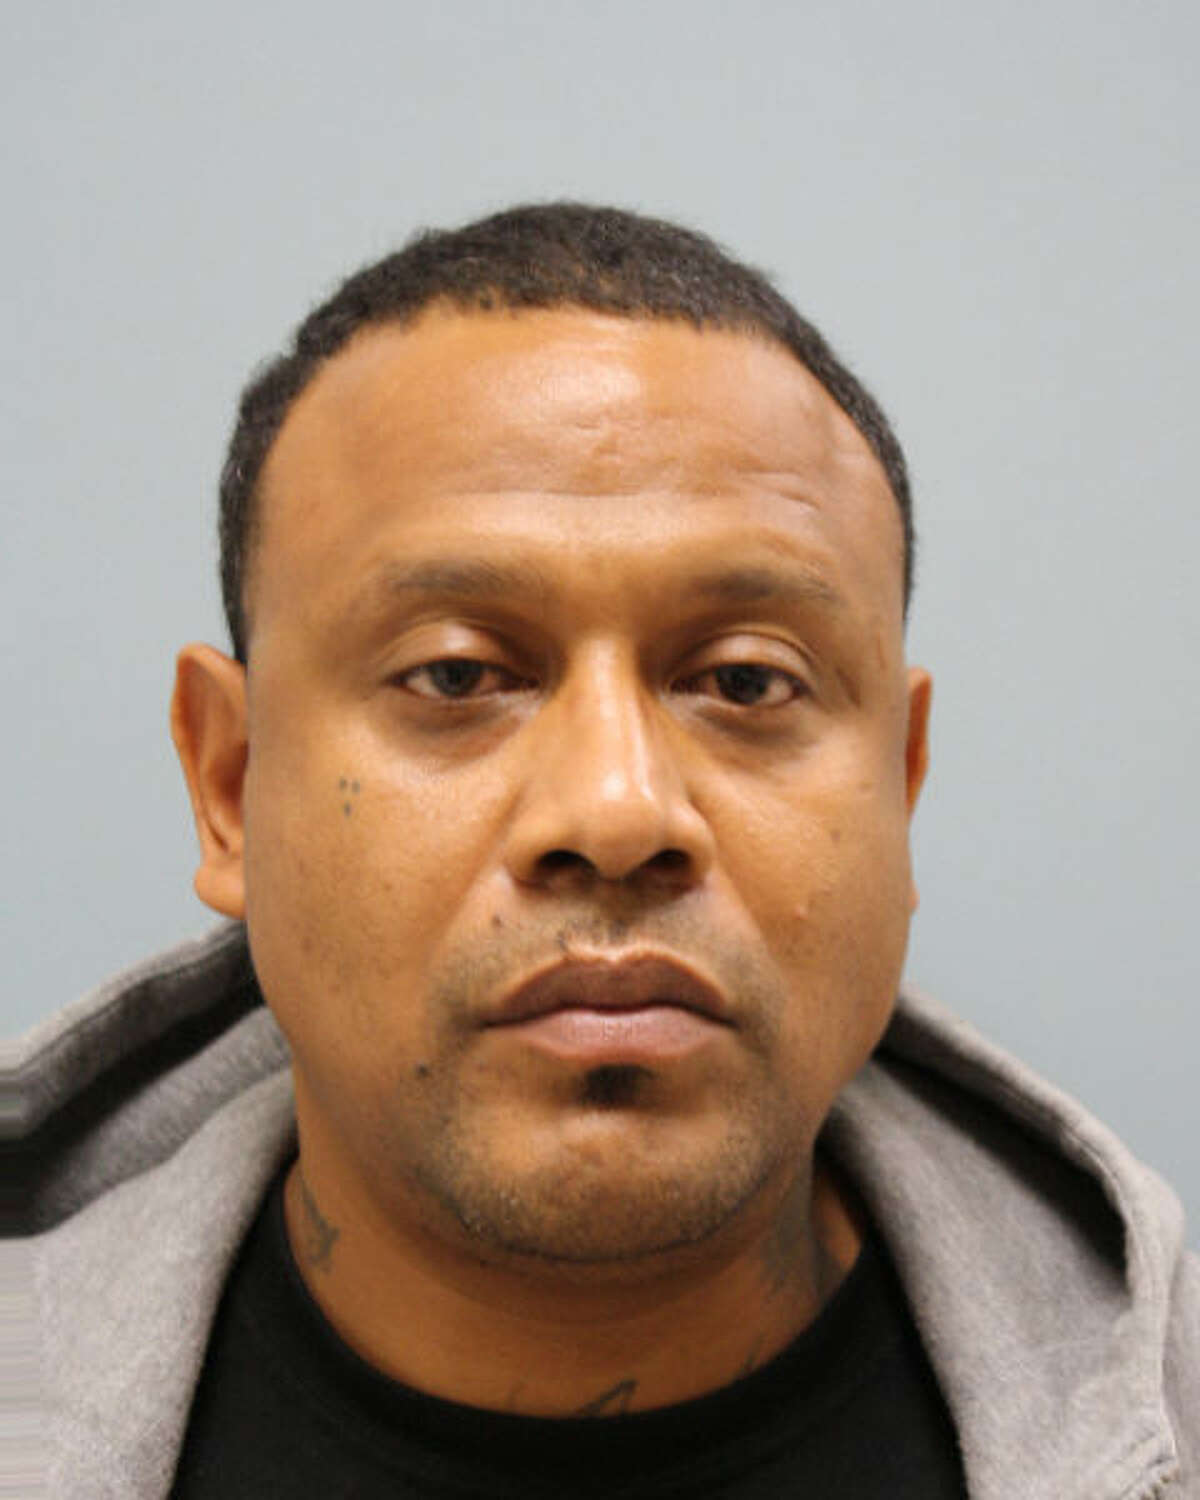 Juan Jose Williams, 41, has been identified as the suspect who fatally shot Germarcus Martin Feb. 16 at the Haverstock Hill Apartments in north Harris County.